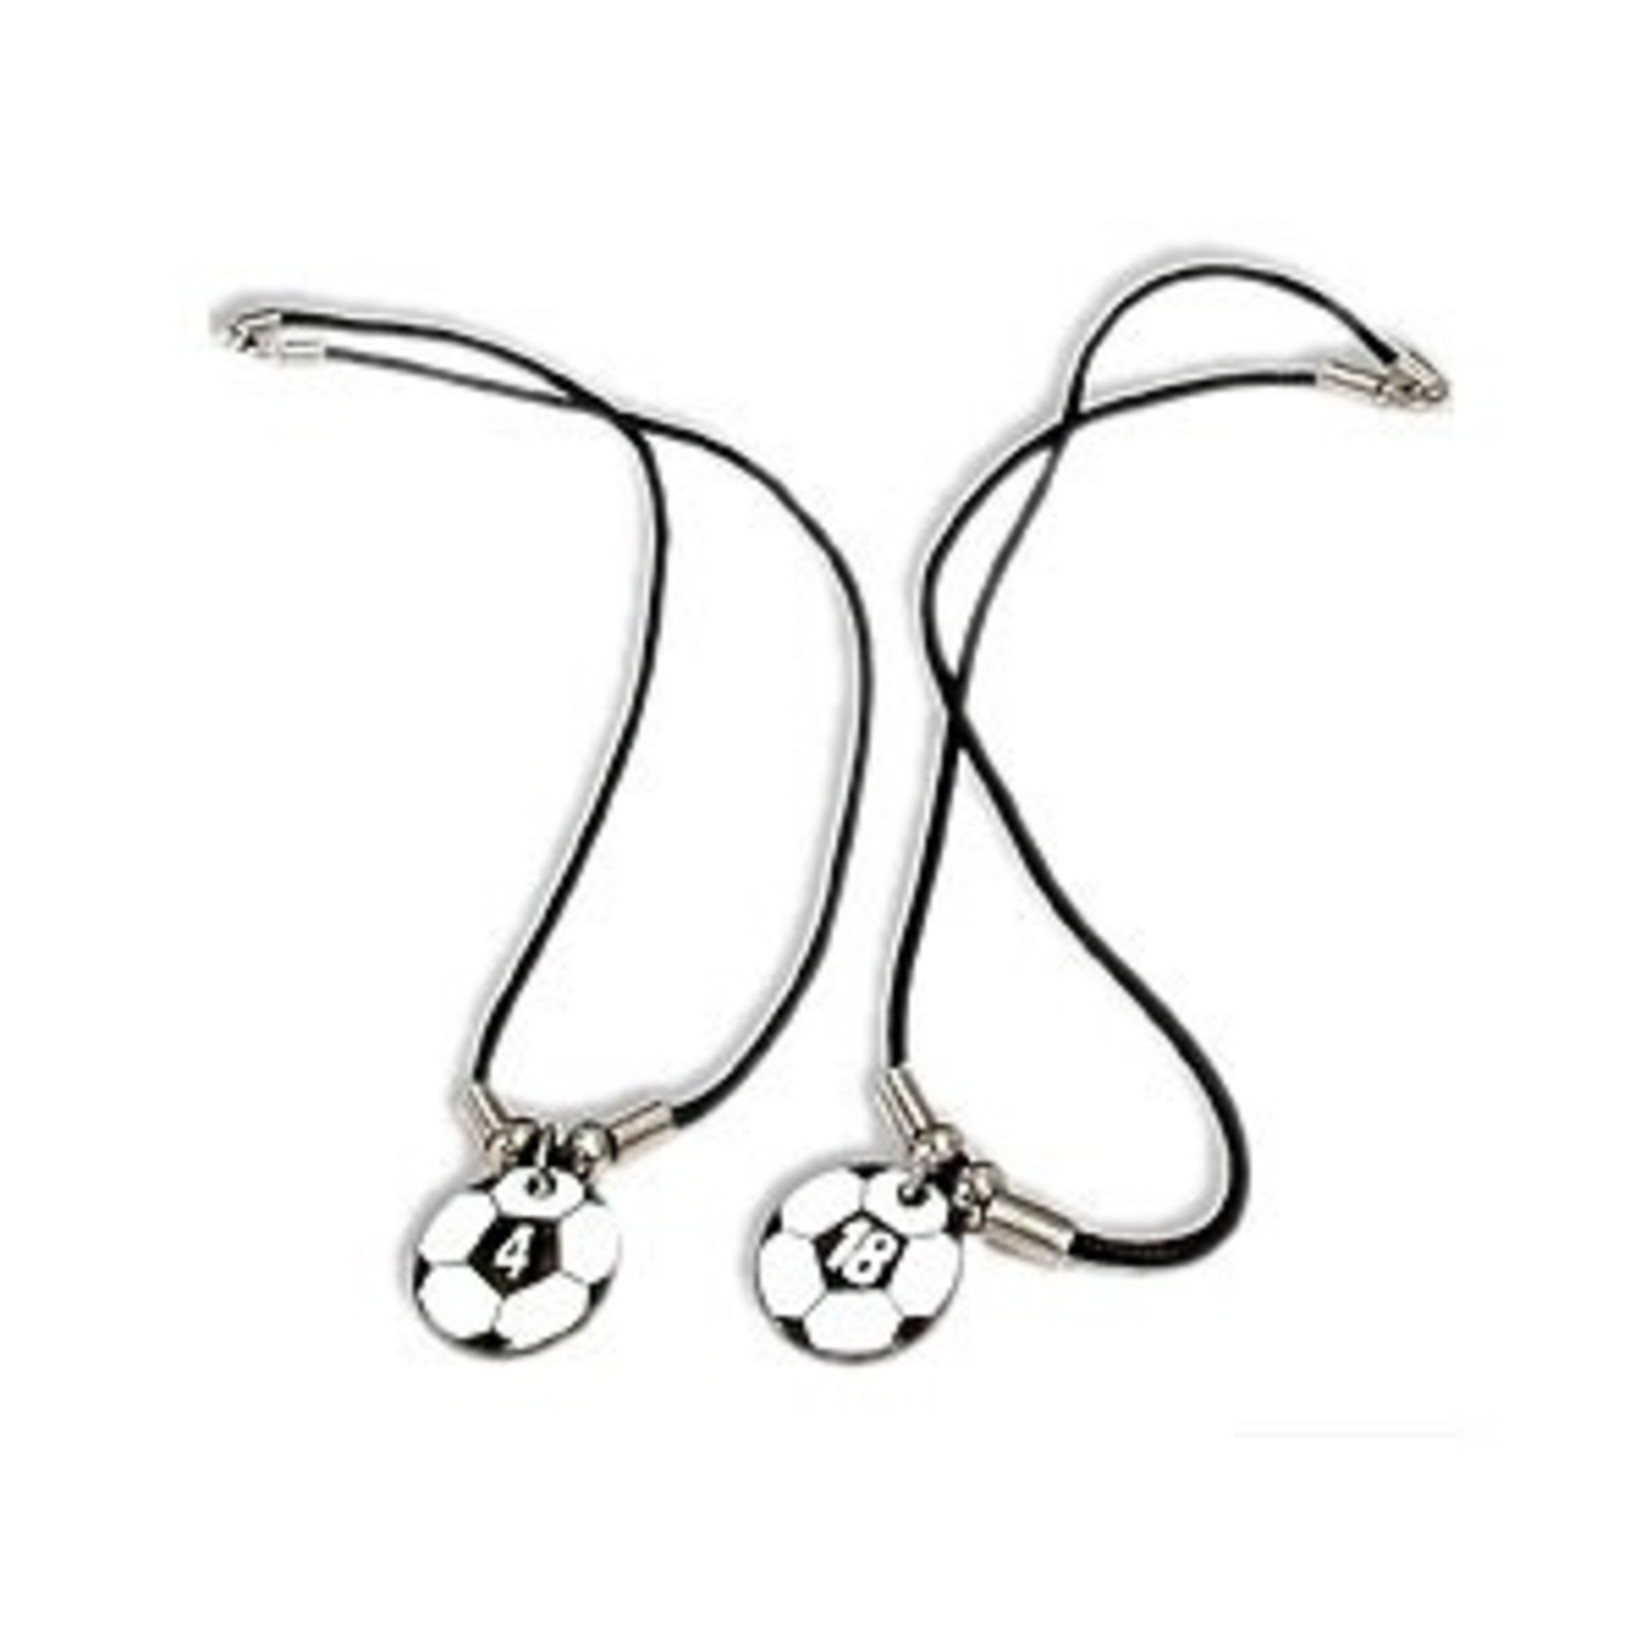 SOCCER BALL NUMBER NECKLACE